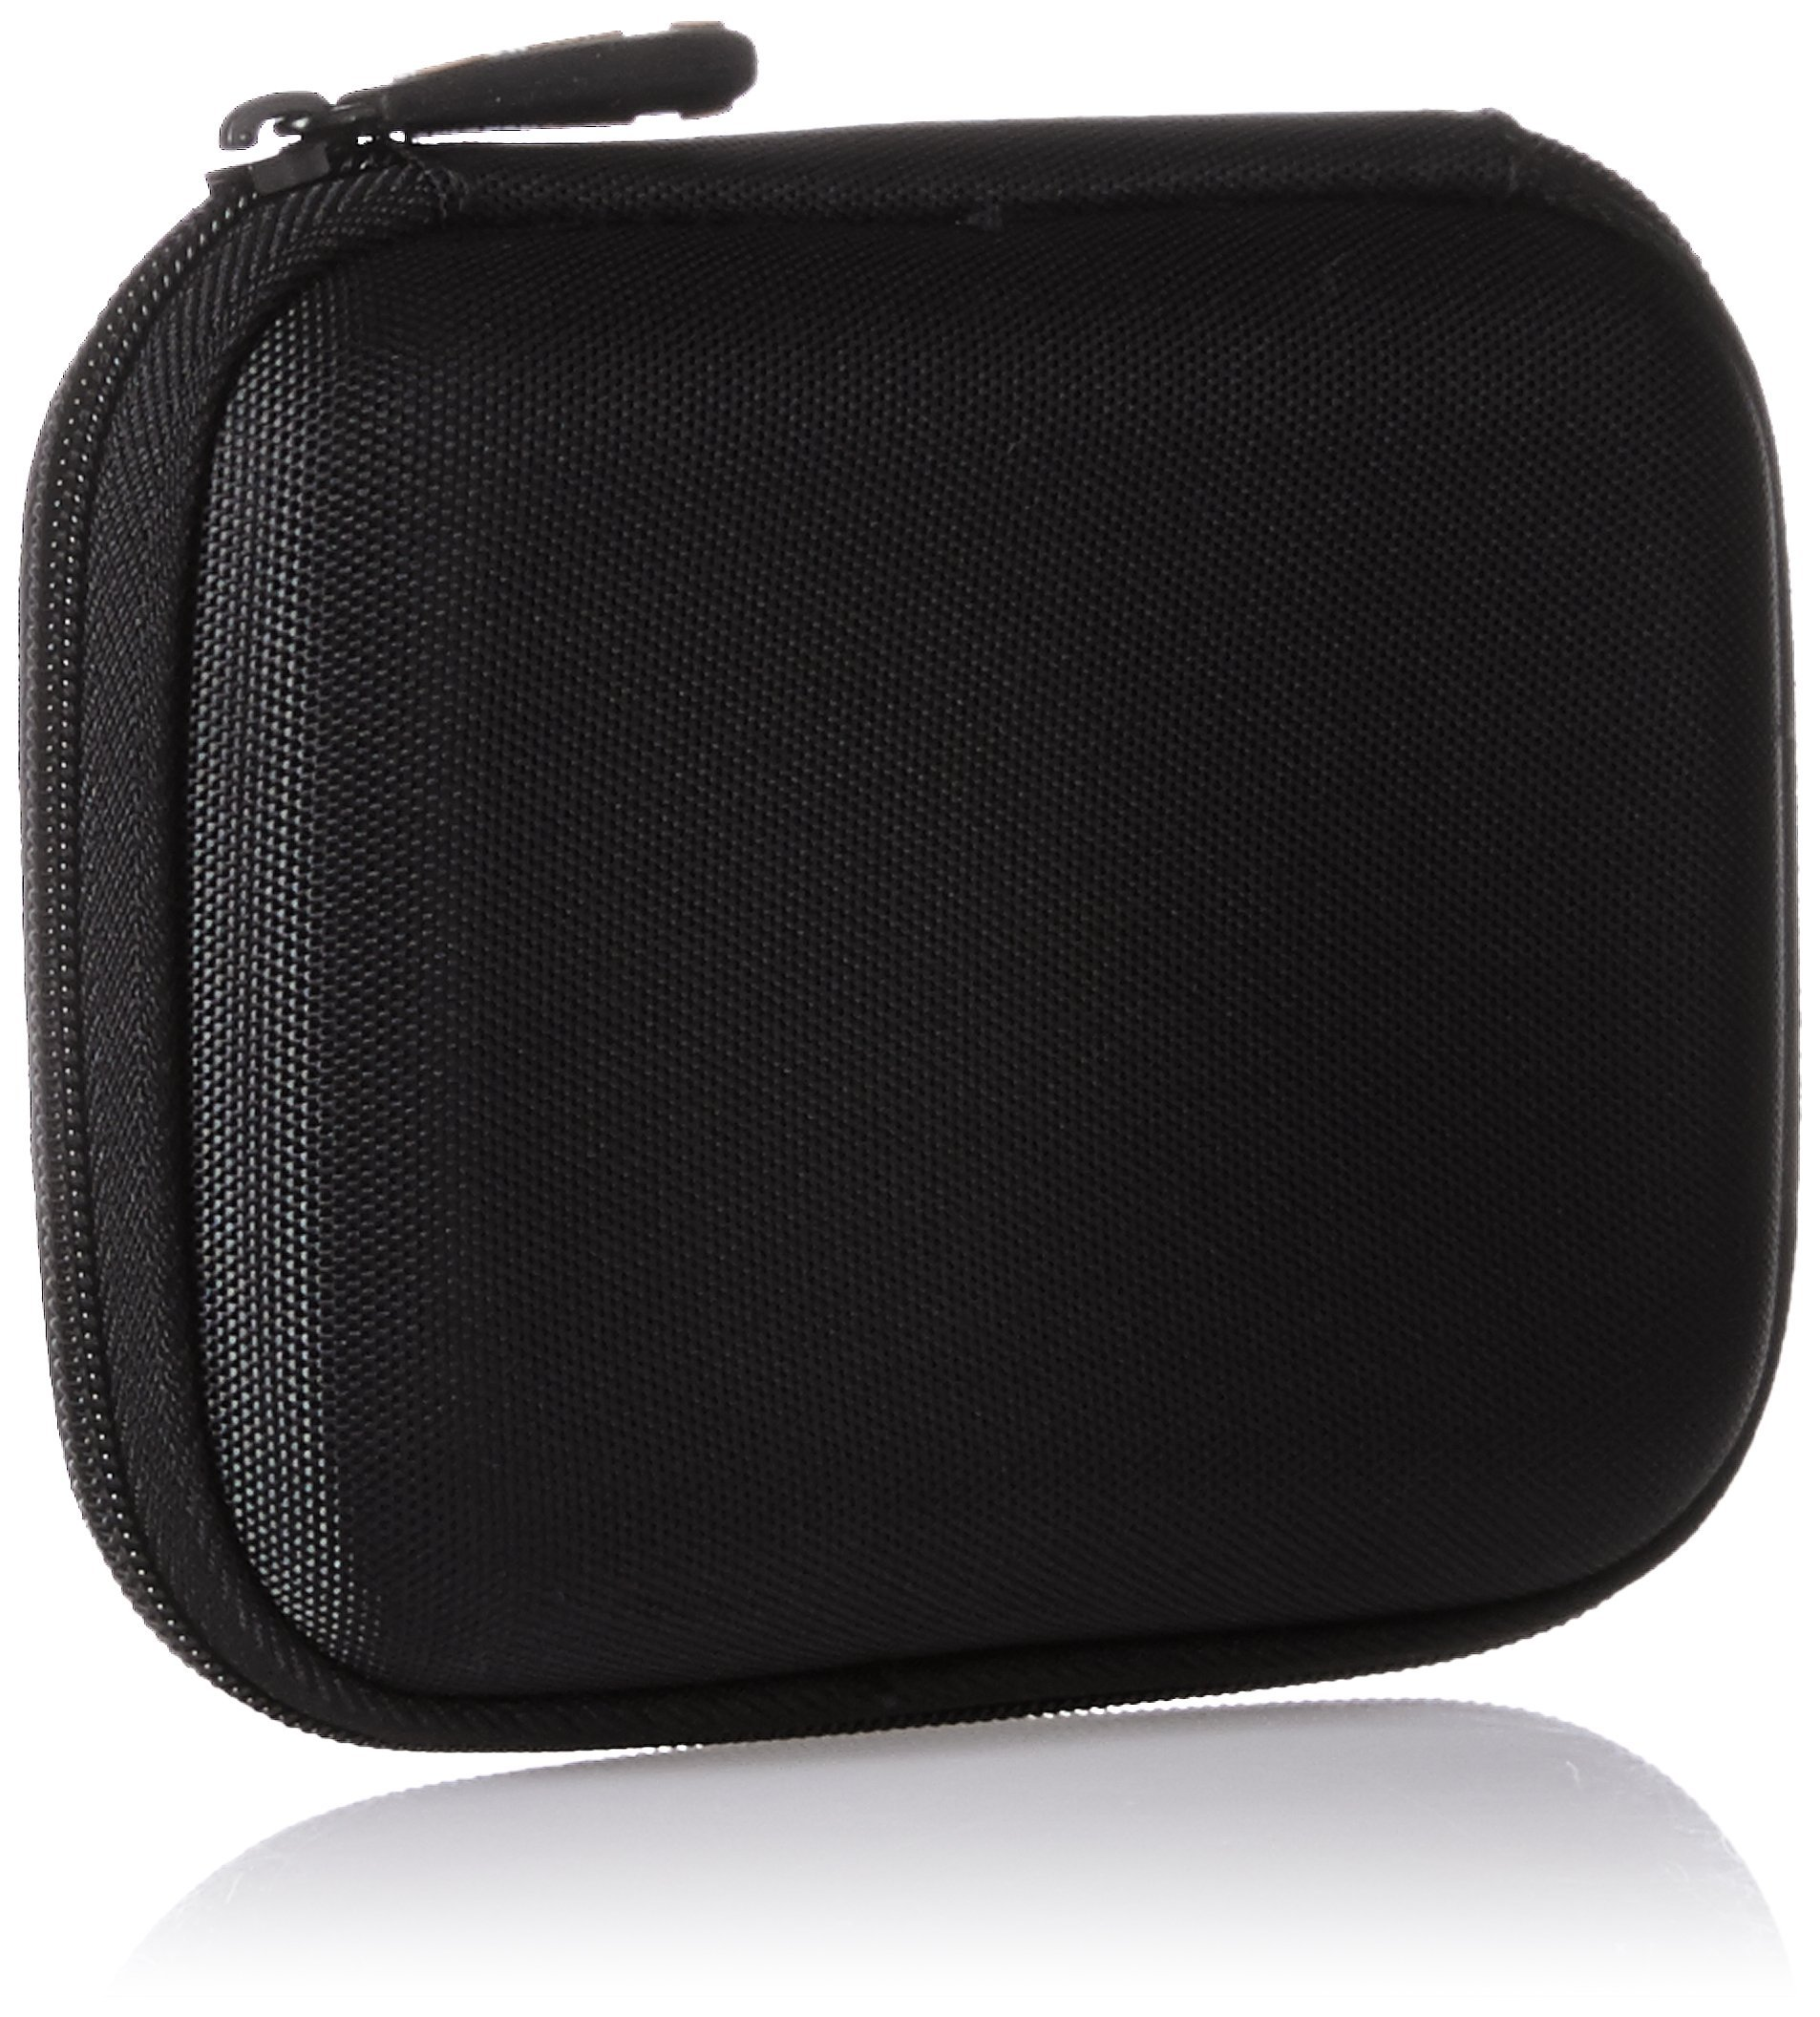 AmazonBasics Hard Carrying Case for My Passport Essential, 24-Pack by AmazonBasics (Image #3)